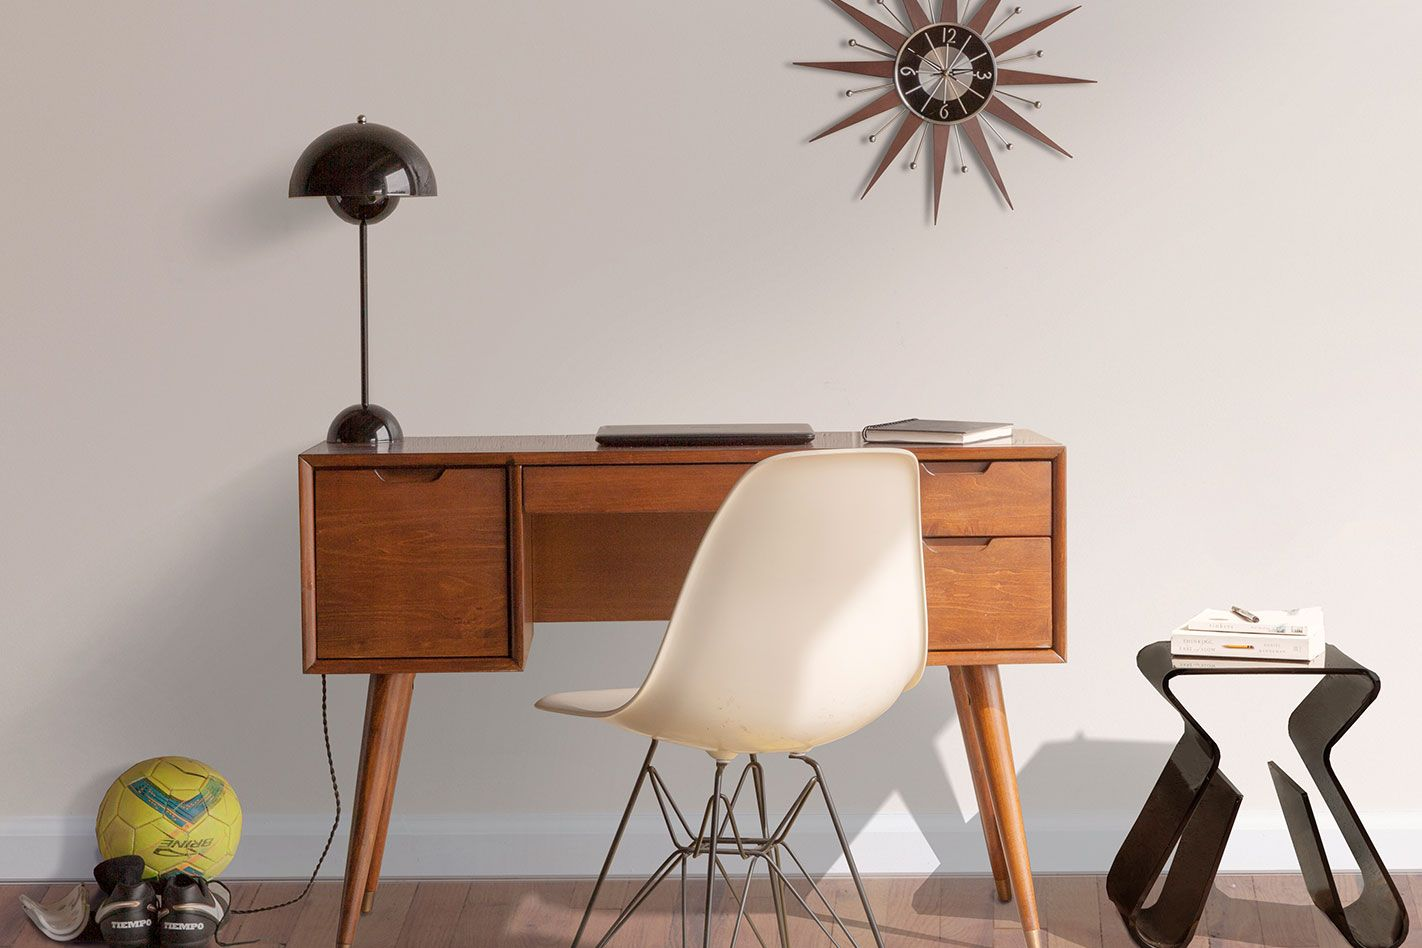 Control Brand Furniture Blowout On Hautelook Furniture Recycled Furniture Furniture For Small Spaces